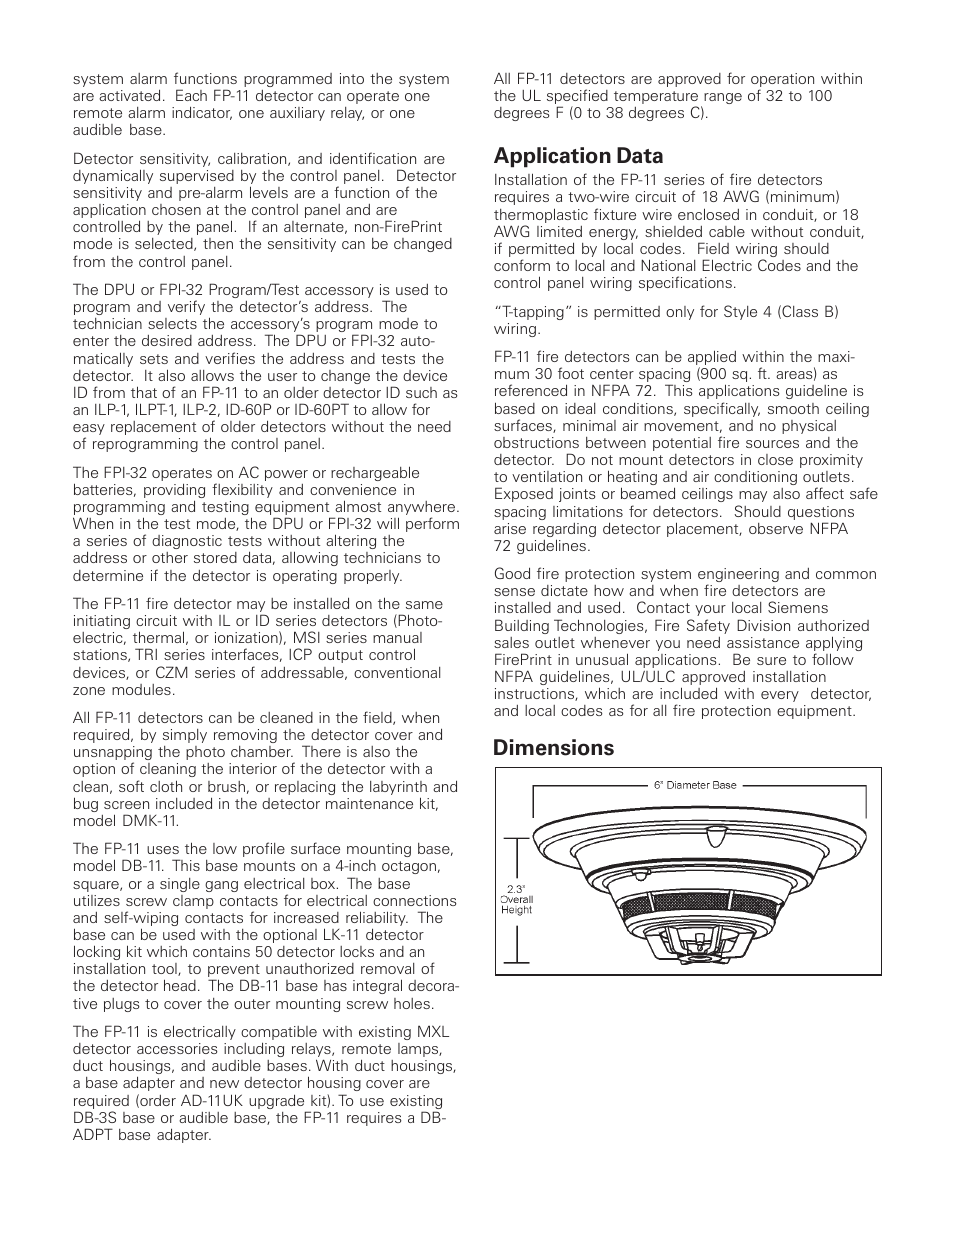 Application data, Diions | Sie FP-11 User Manual ... on